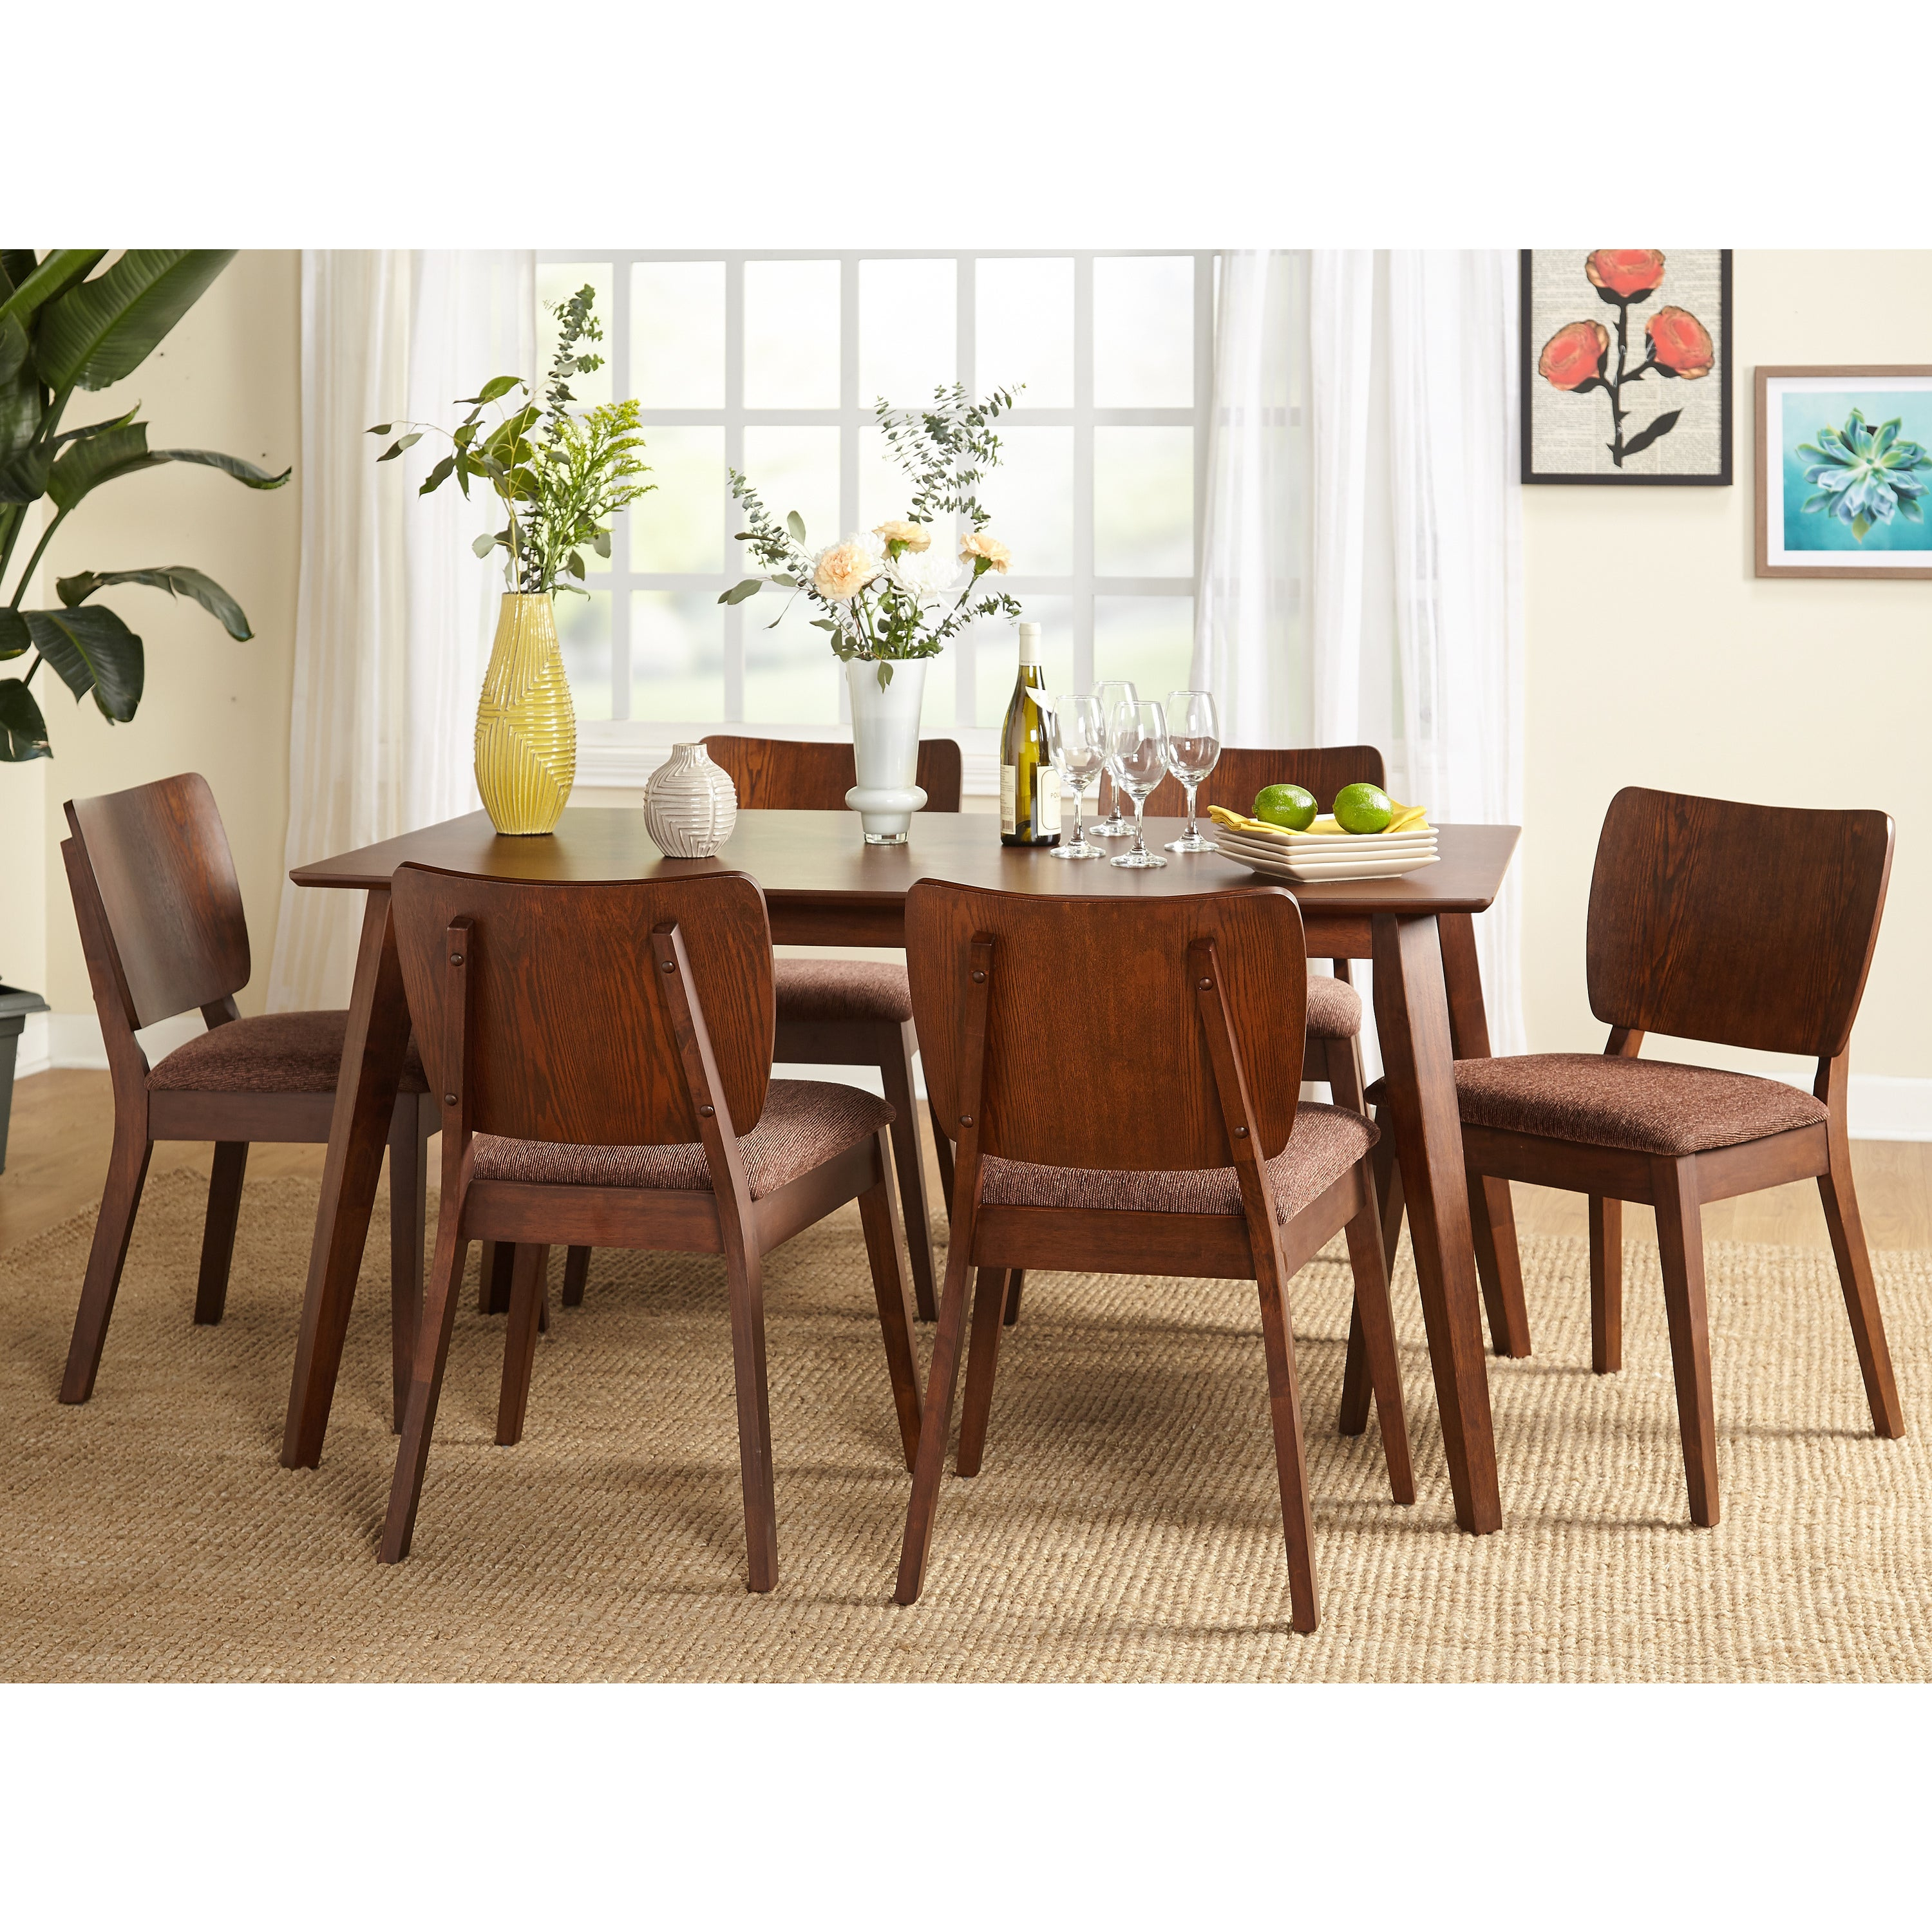 Goodman 5 Piece Solid Wood Dining Sets (Set Of 5) Pertaining To Well Liked Buy 5 Piece Sets, Wood Kitchen & Dining Room Sets Online At (#7 of 20)